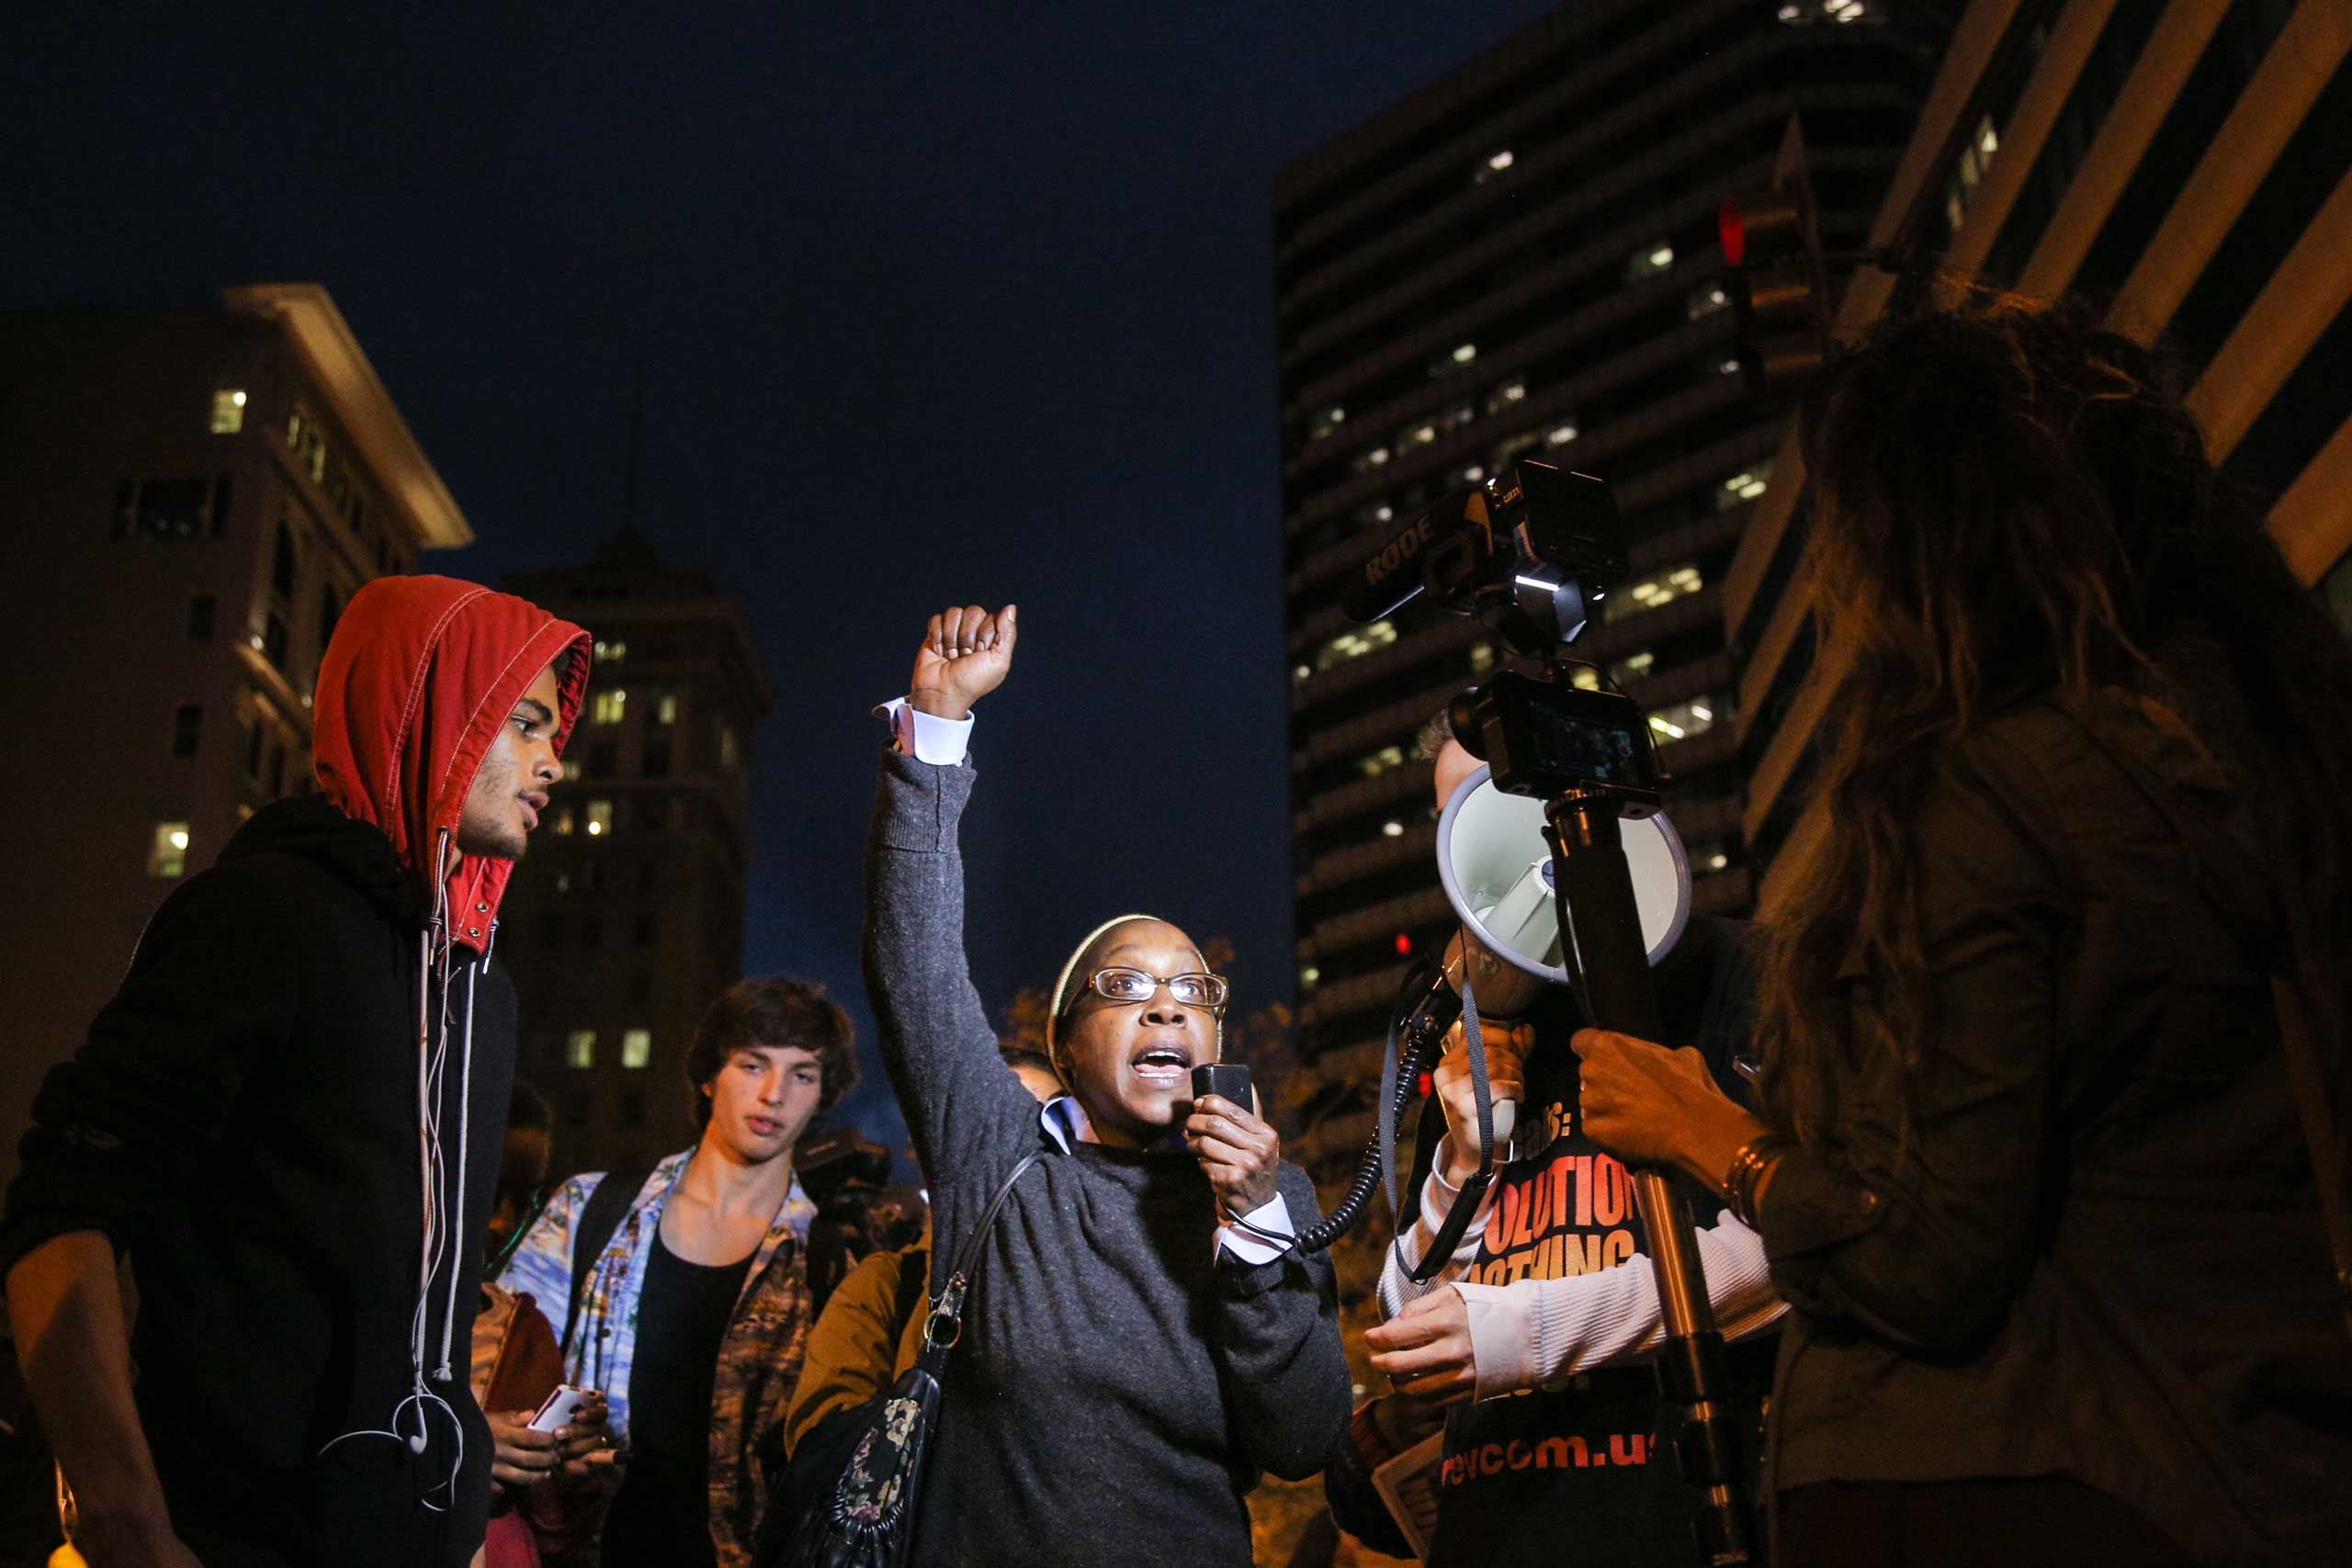 Regina Bates speaks during a demonstration in Oakland, Calif. on Dec. 3, 2014.